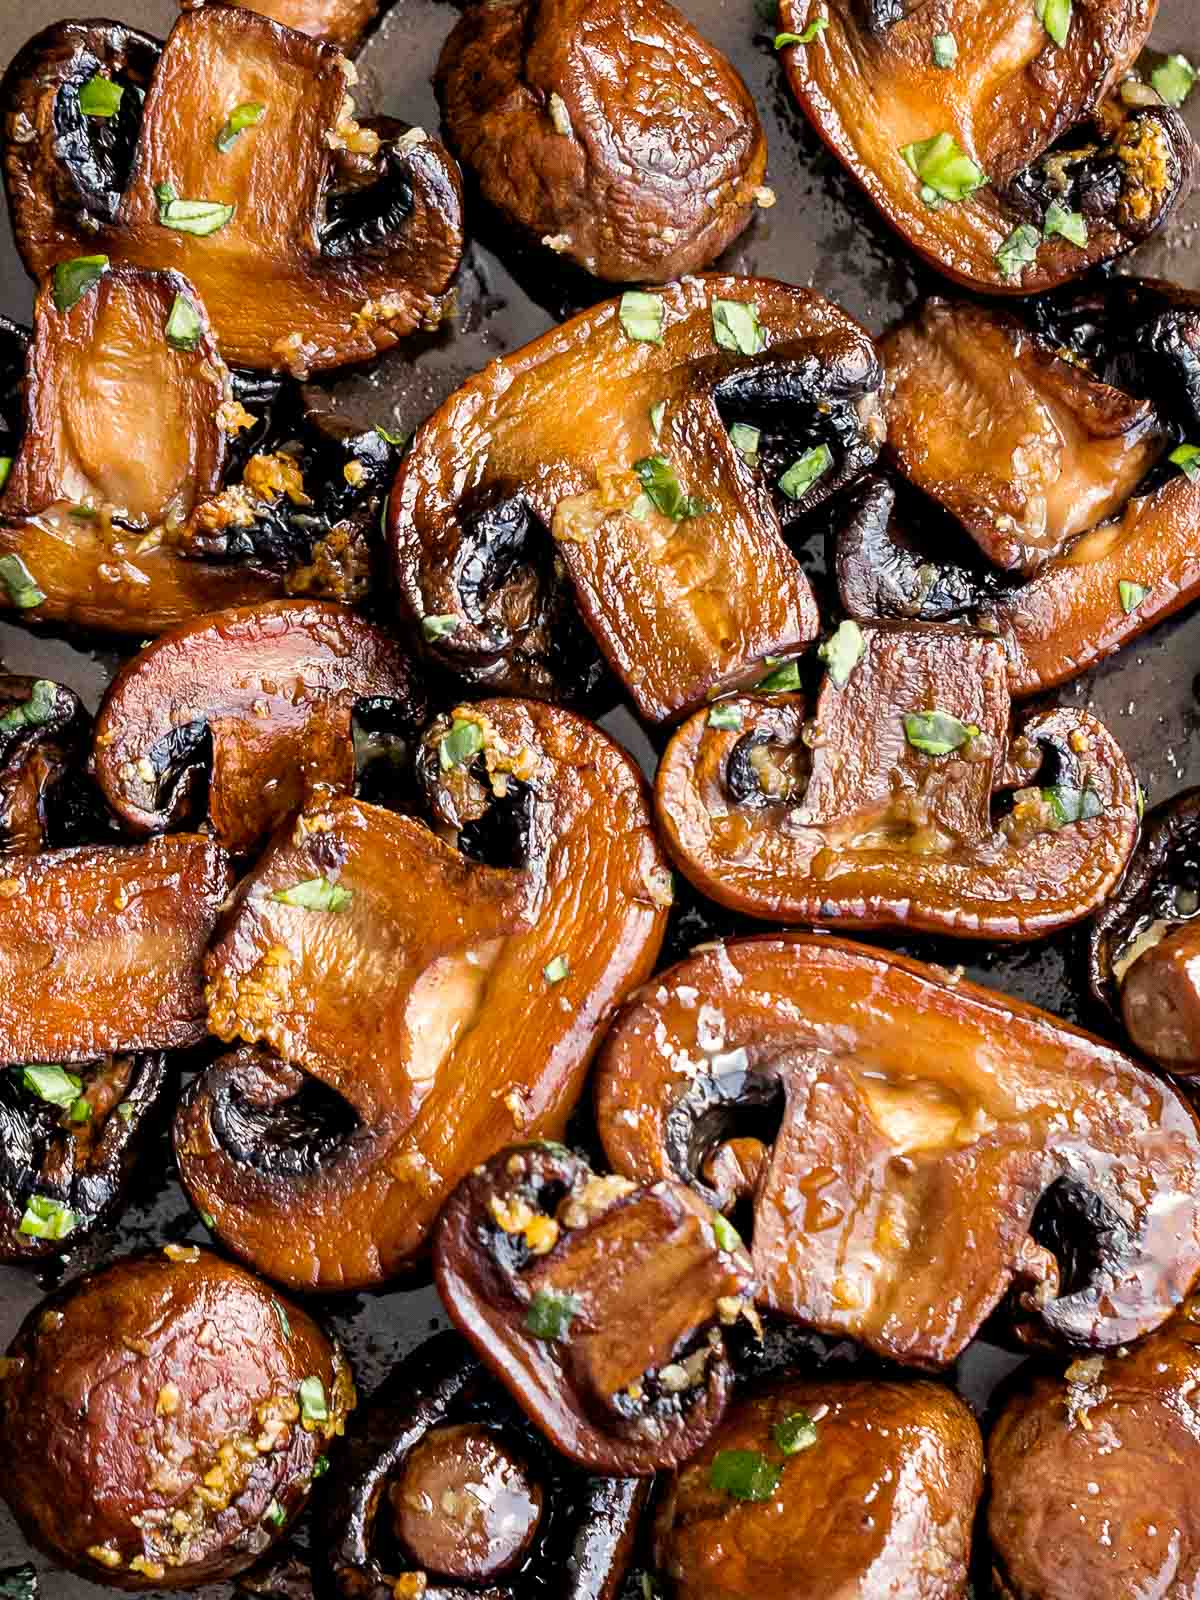 sauteed mushrooms laying flat on a pan and garnished with chopped parsley